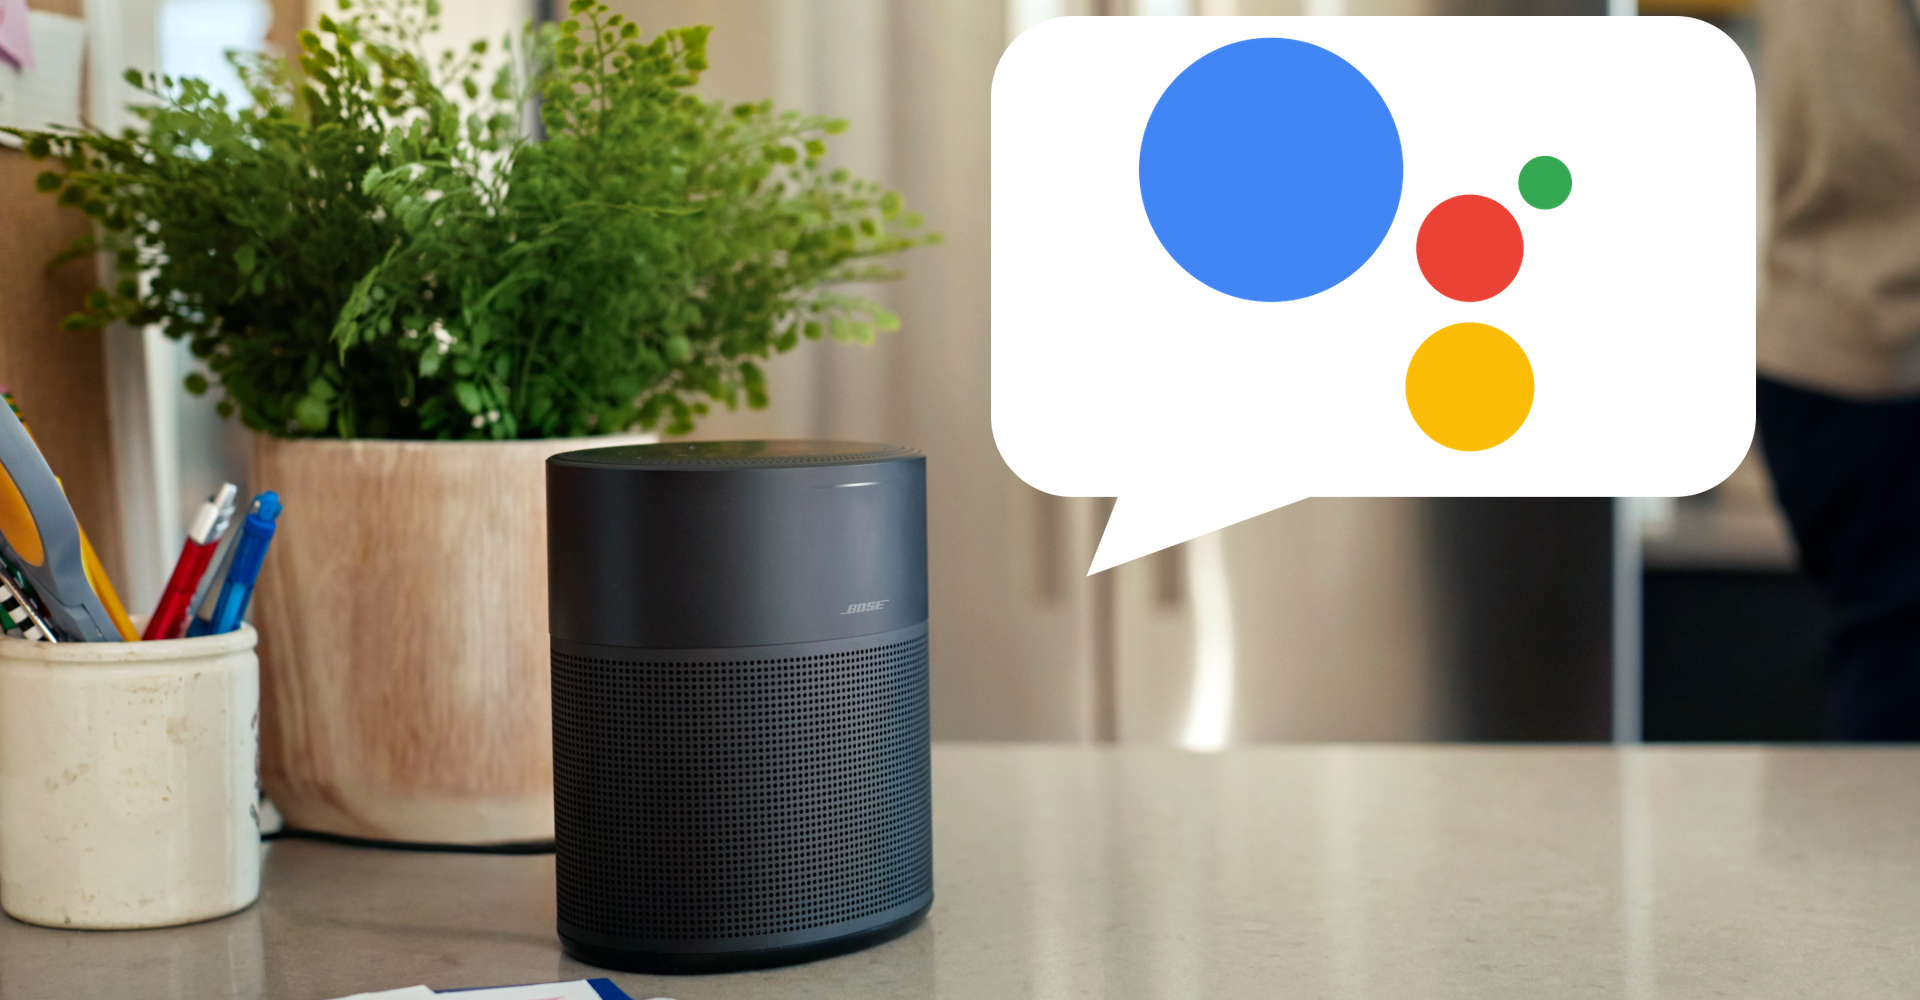 Bose smart speakers add Google Assistant to Amazon Alexa